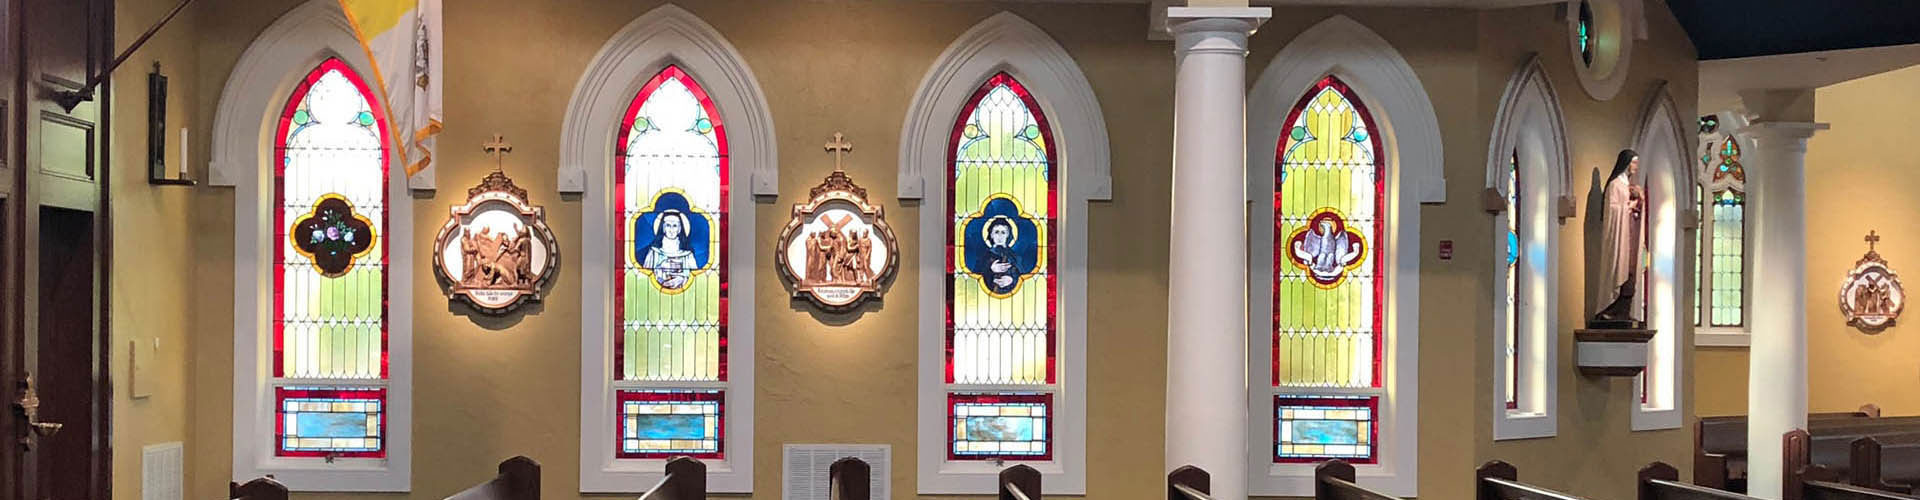 large beautiful banner image of St. John's stained glass windows